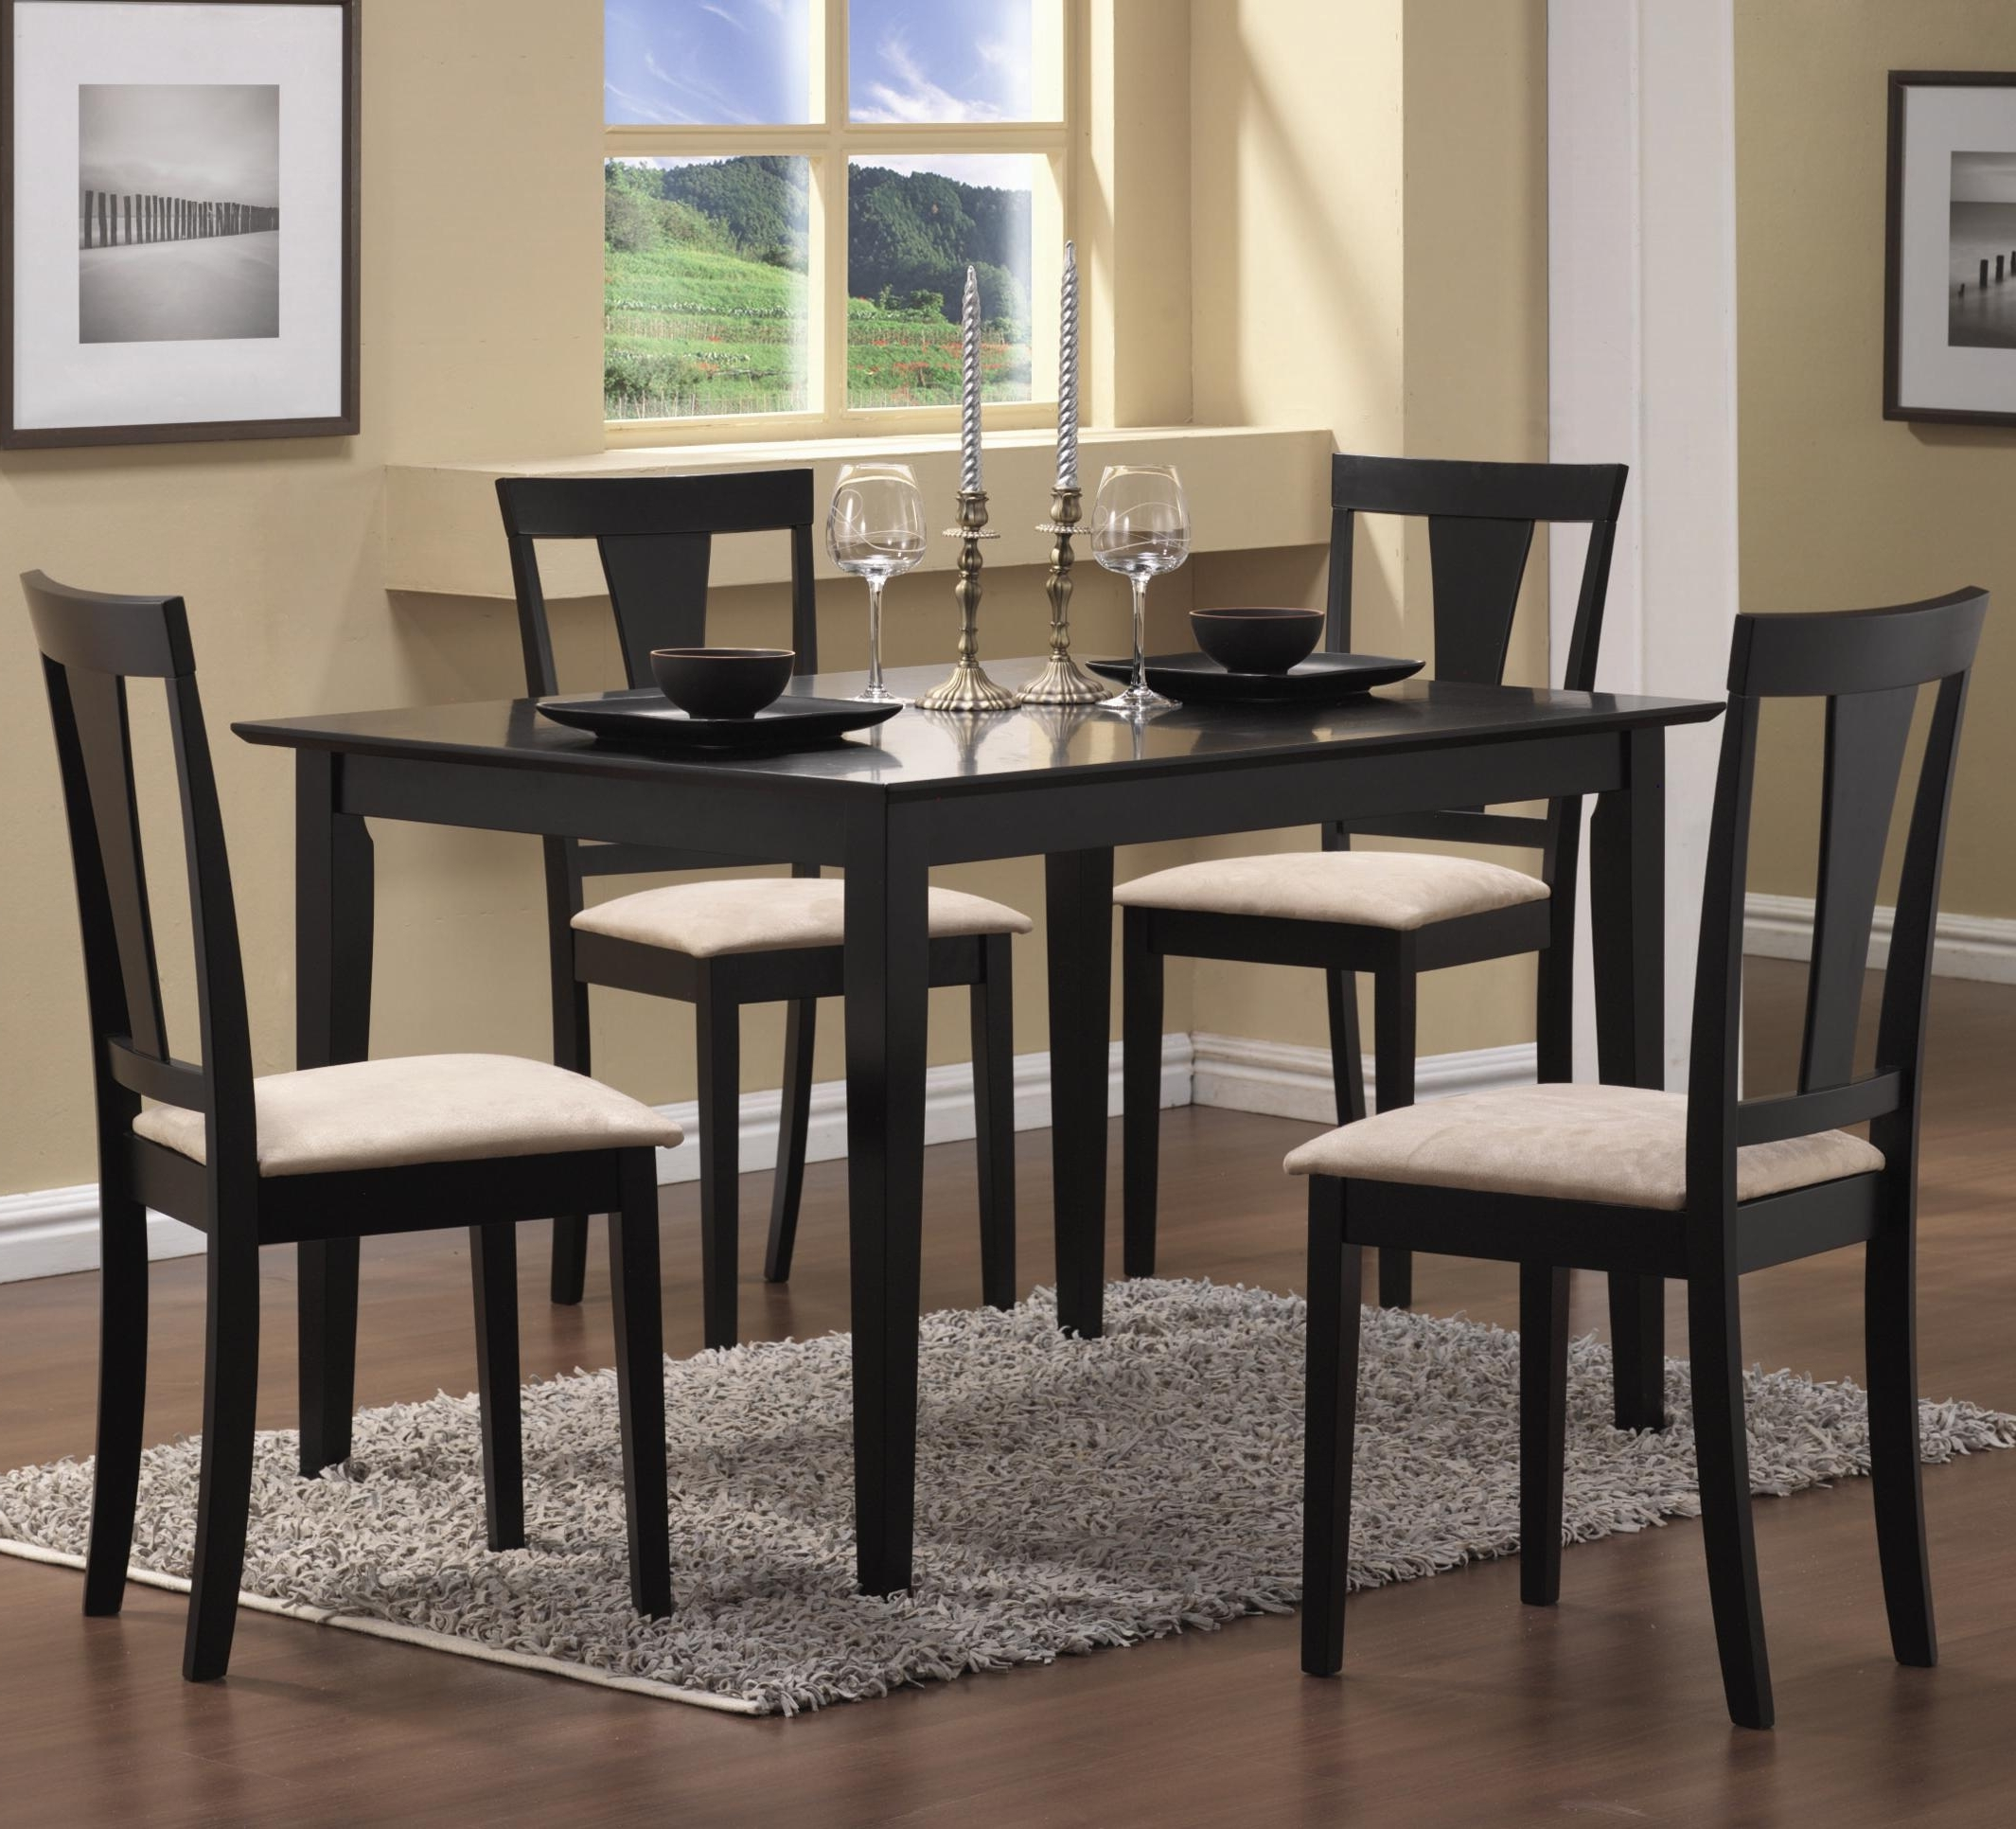 Most Popular Cheap Dining Tables And Chairs In Santa Clara Furniture Store, San Jose Furniture Store, Sunnyvale (Gallery 20 of 25)